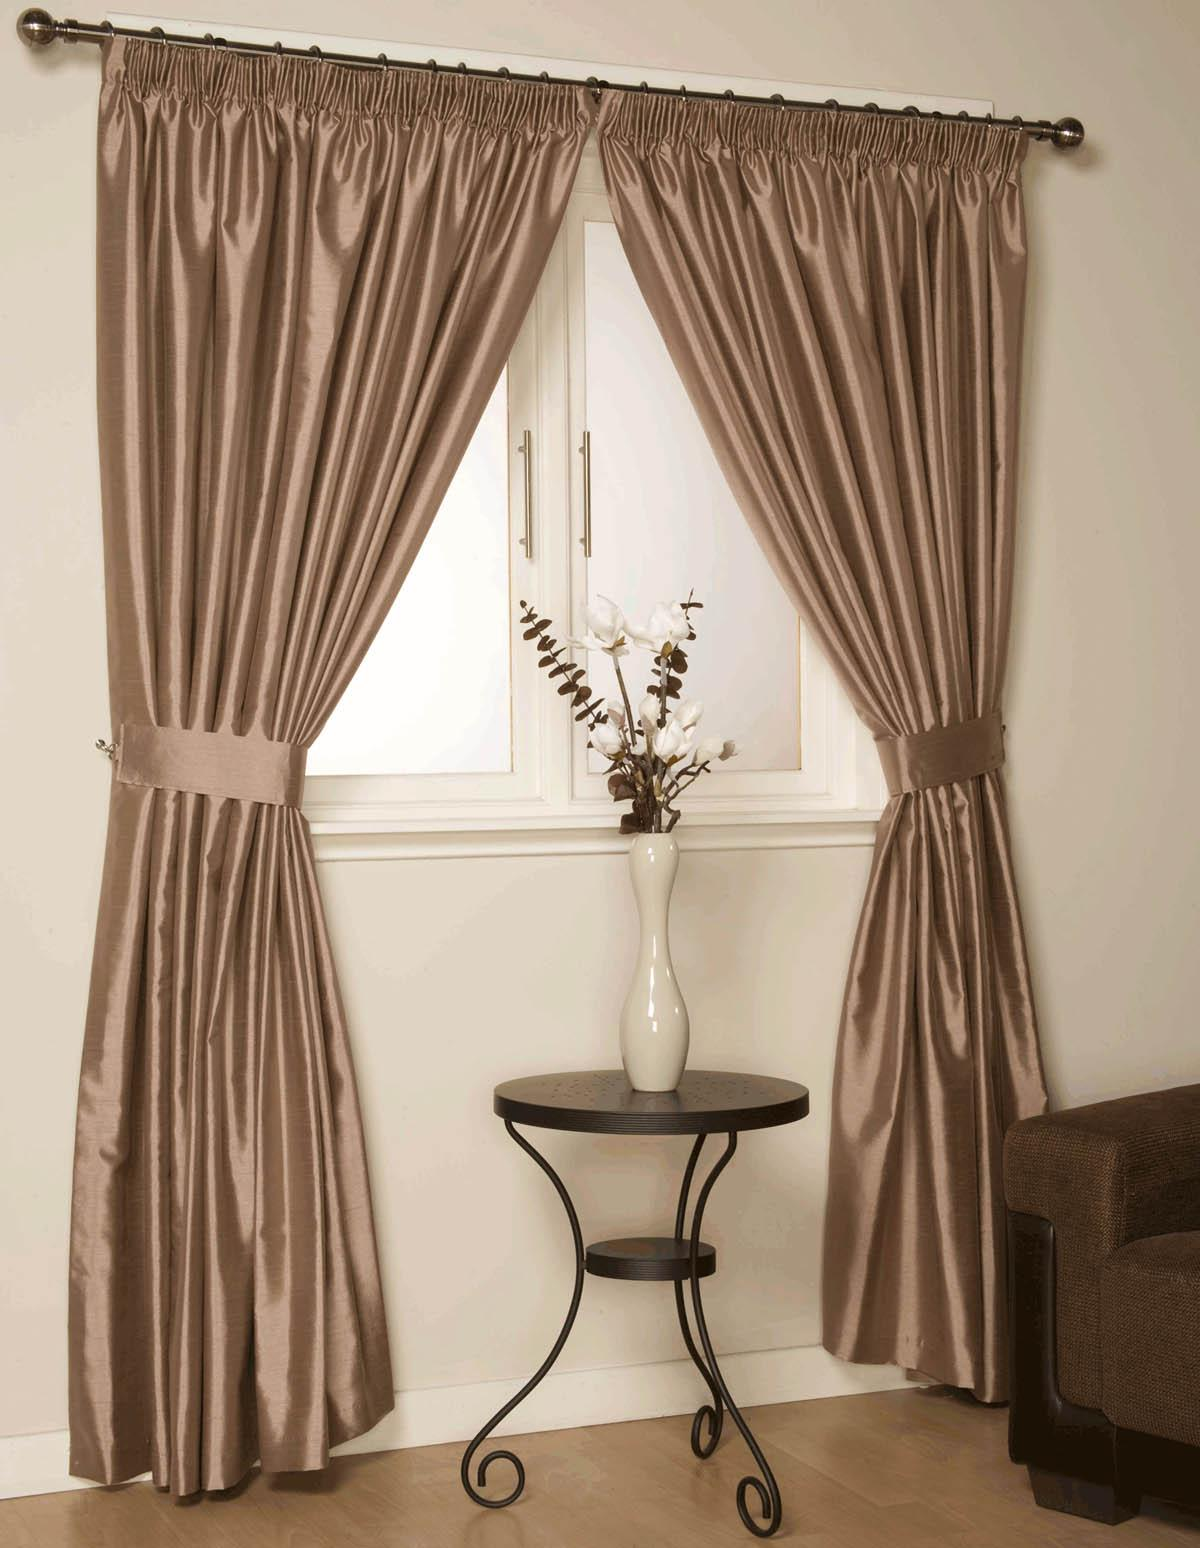 Curtain Deals Buy Cheap Ready Made Curtains Compare Curtains And Blinds